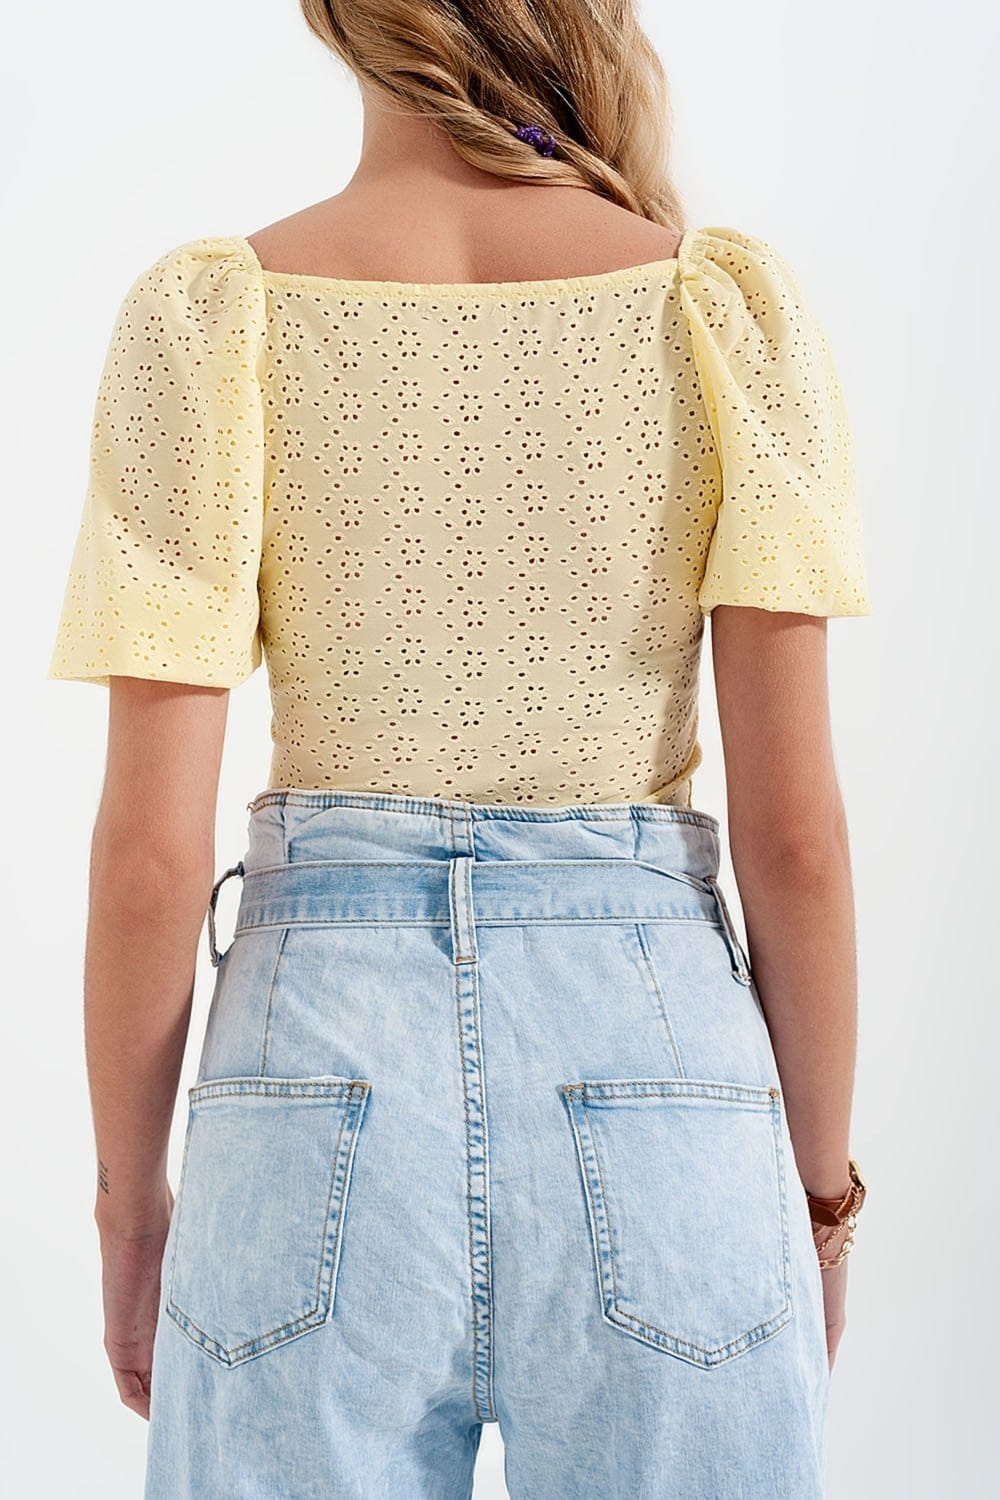 Yellow Short Top in Batiste Fabric with Puffed Sleeves - Himelhoch's